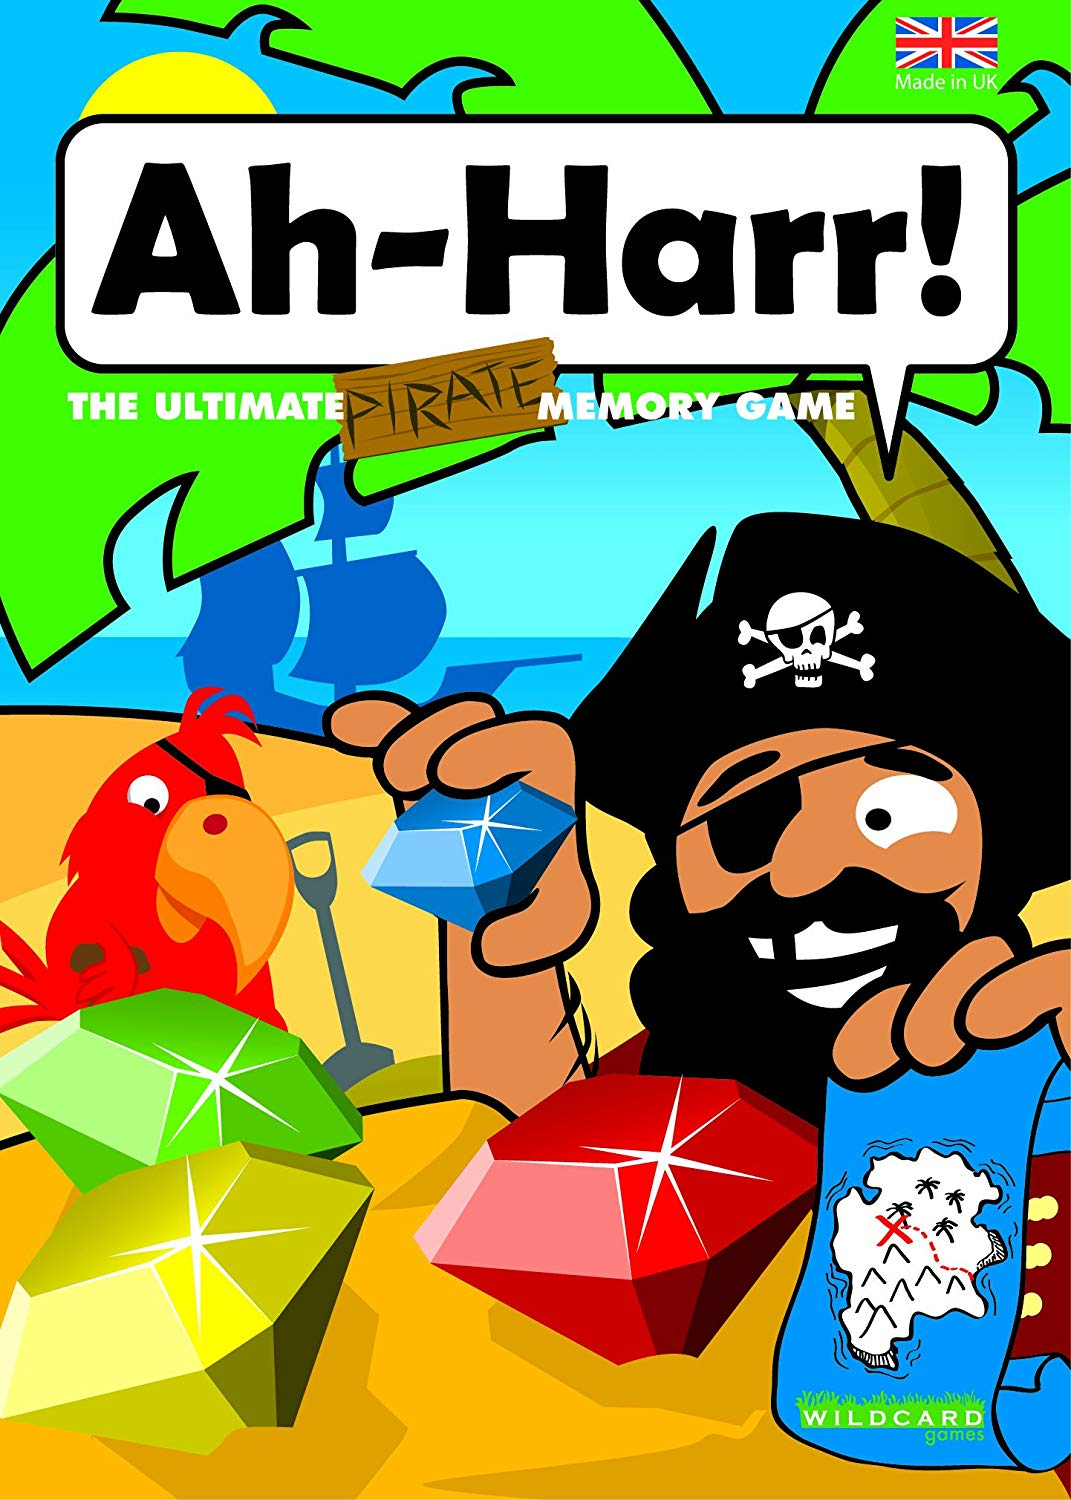 Ah-Harr! – The Ultimate Pirate Memory Matching Card Game for kids and adult pirates